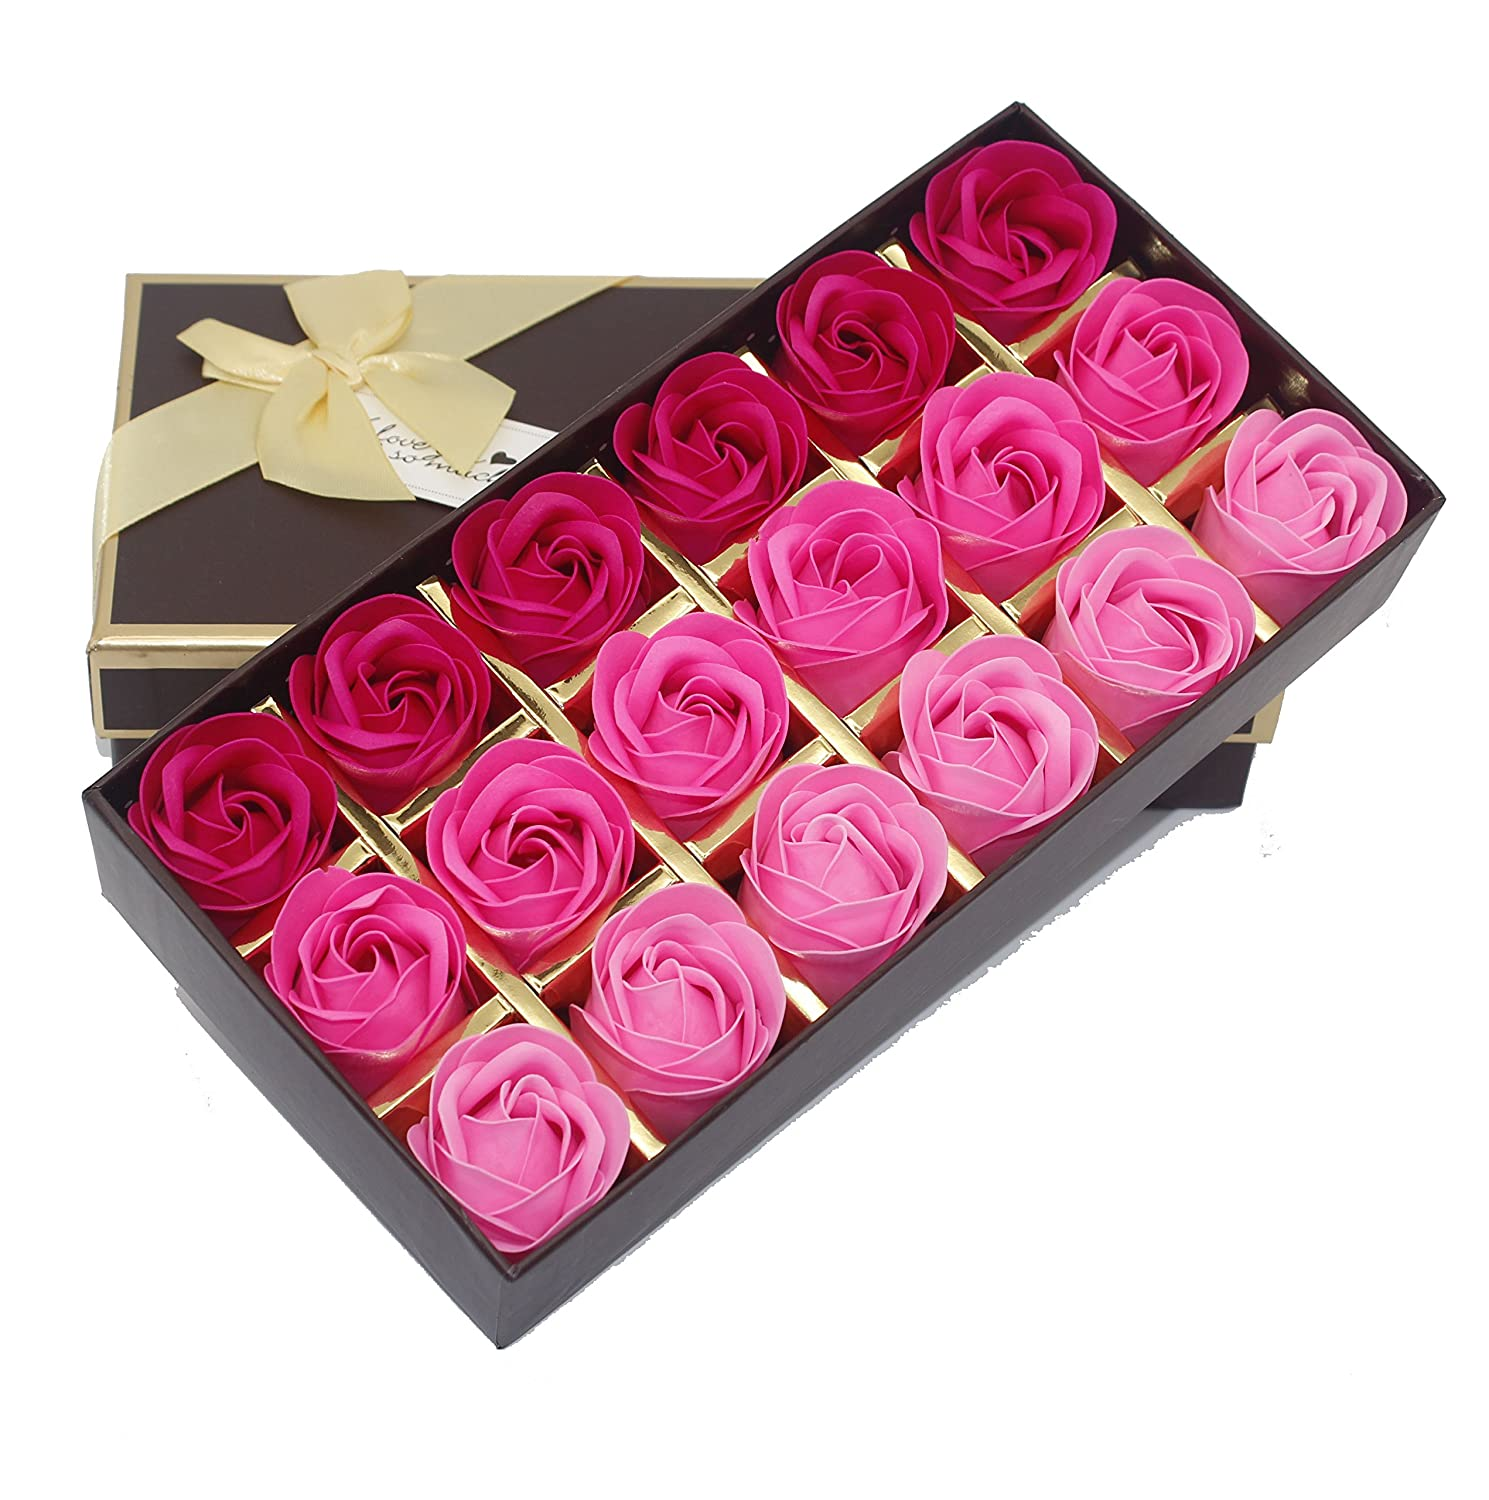 Bath Soap Rose Flower Floral Scented Soap Rose Petals Body Soap in Gift Box for Valentine's Day Anniversary Mother's Day Birthday (18 Pcs/Box Gradient Pink) Little World